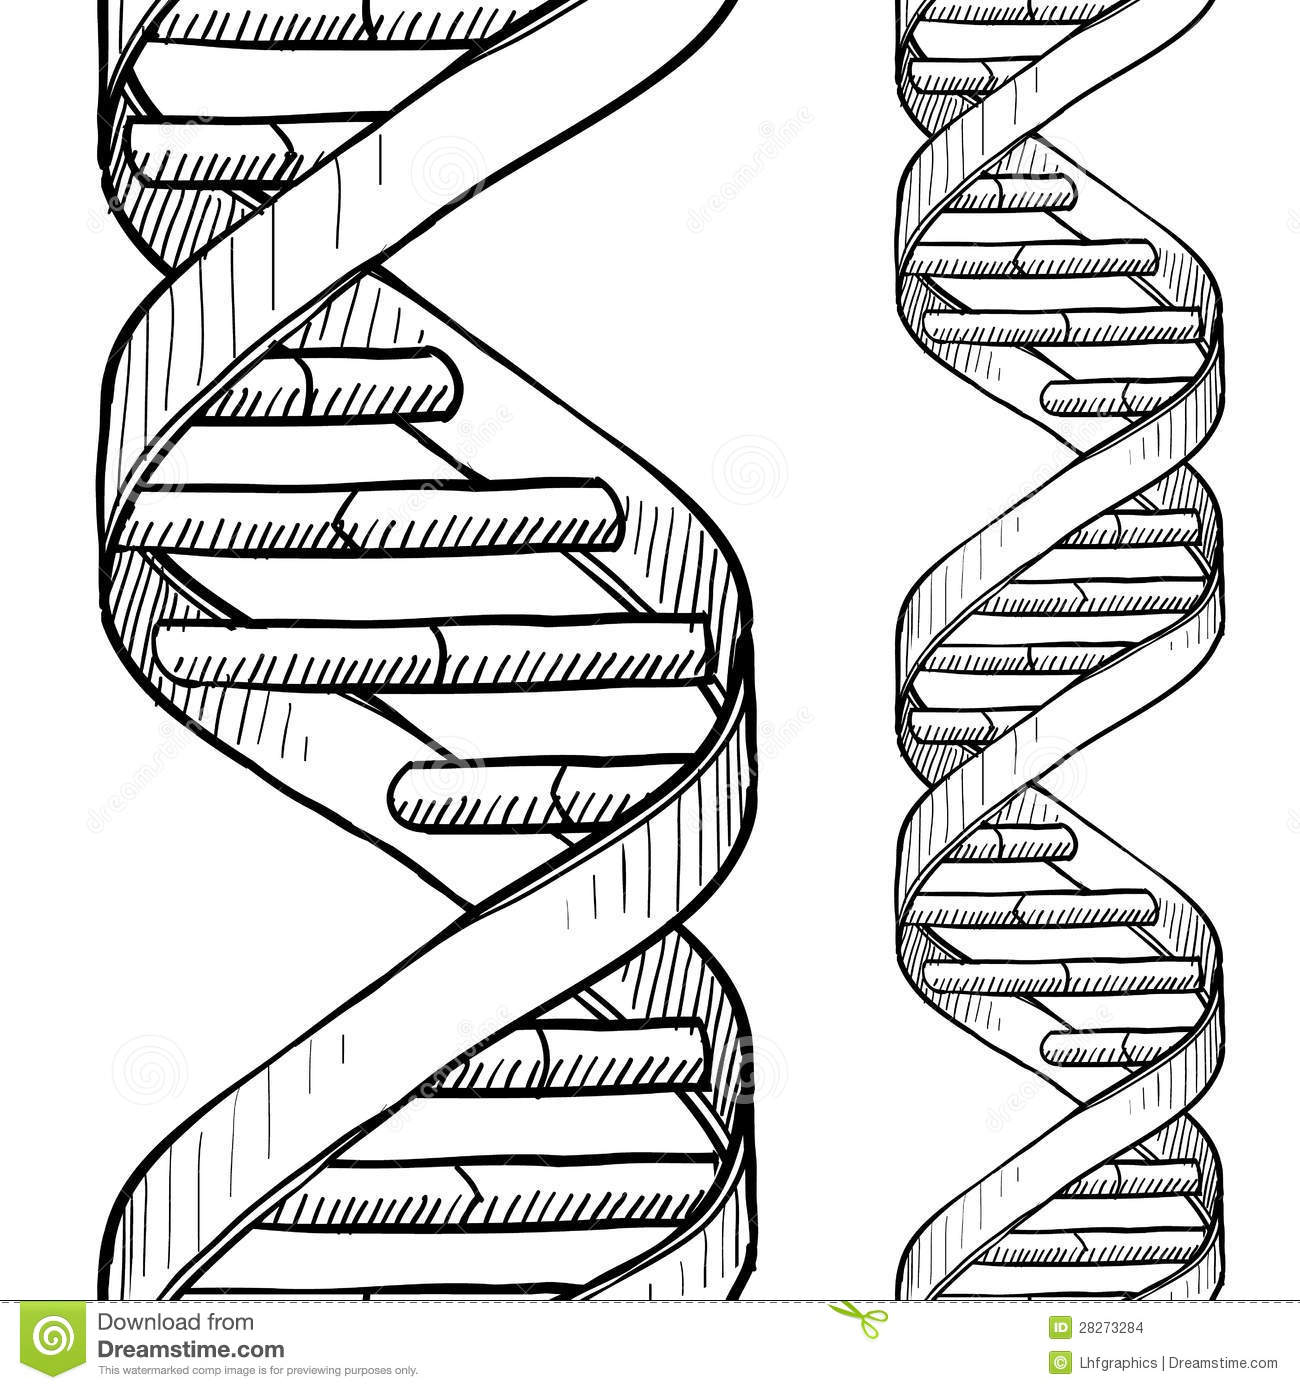 Dna The Double Helix Coloring Worksheet Answers Free Coloring Pages ...